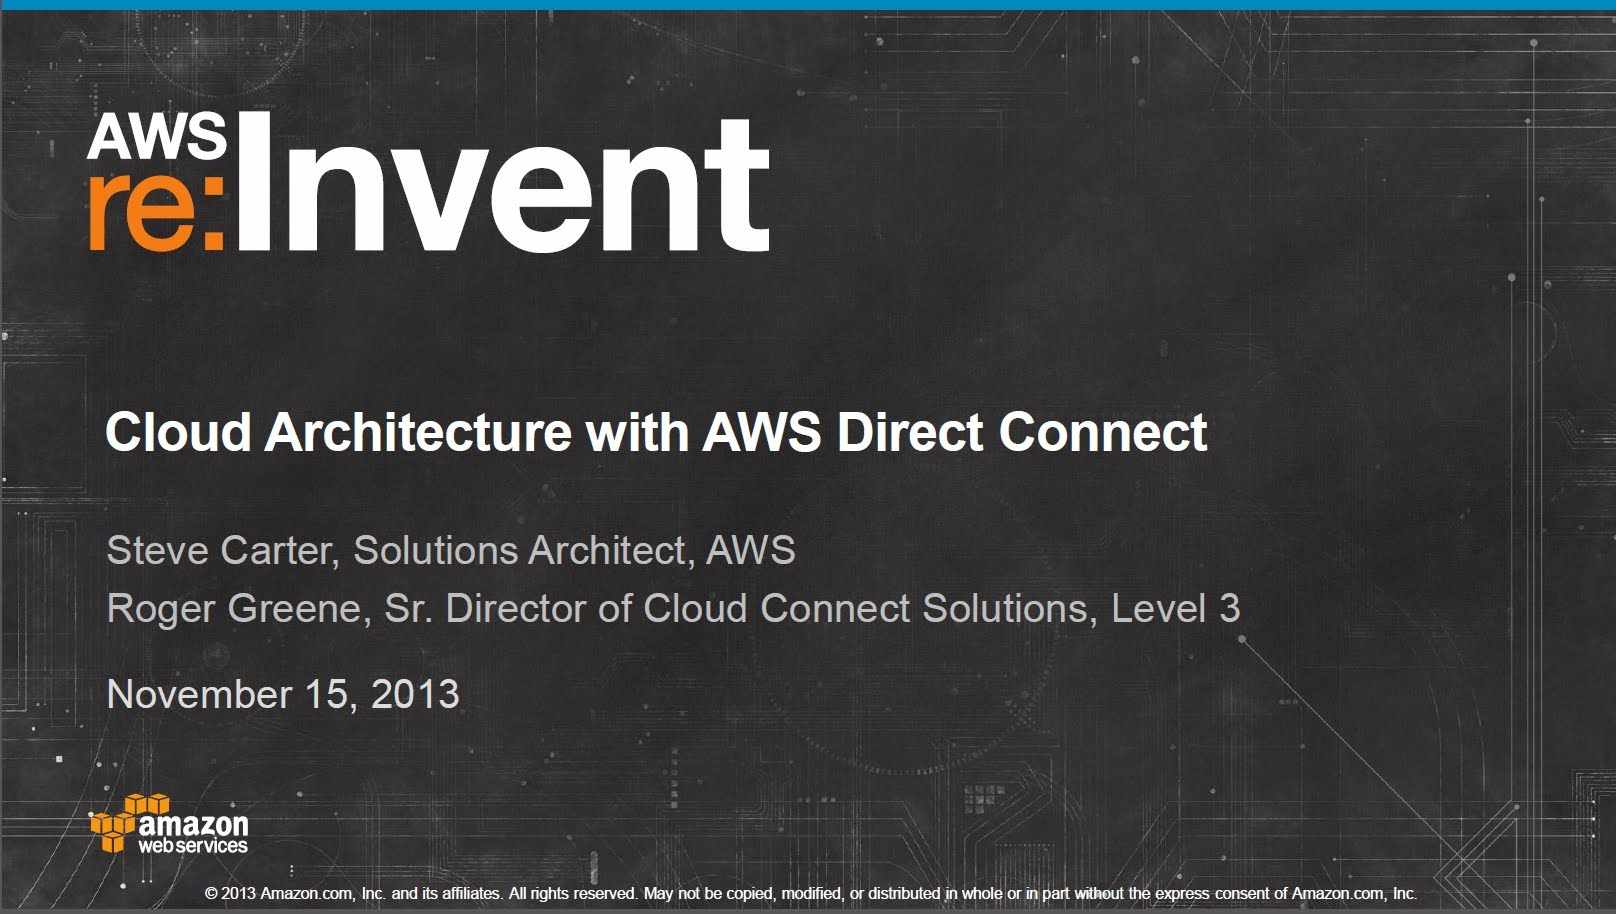 Cloud Architecture with Amazon AWS Direct Connect